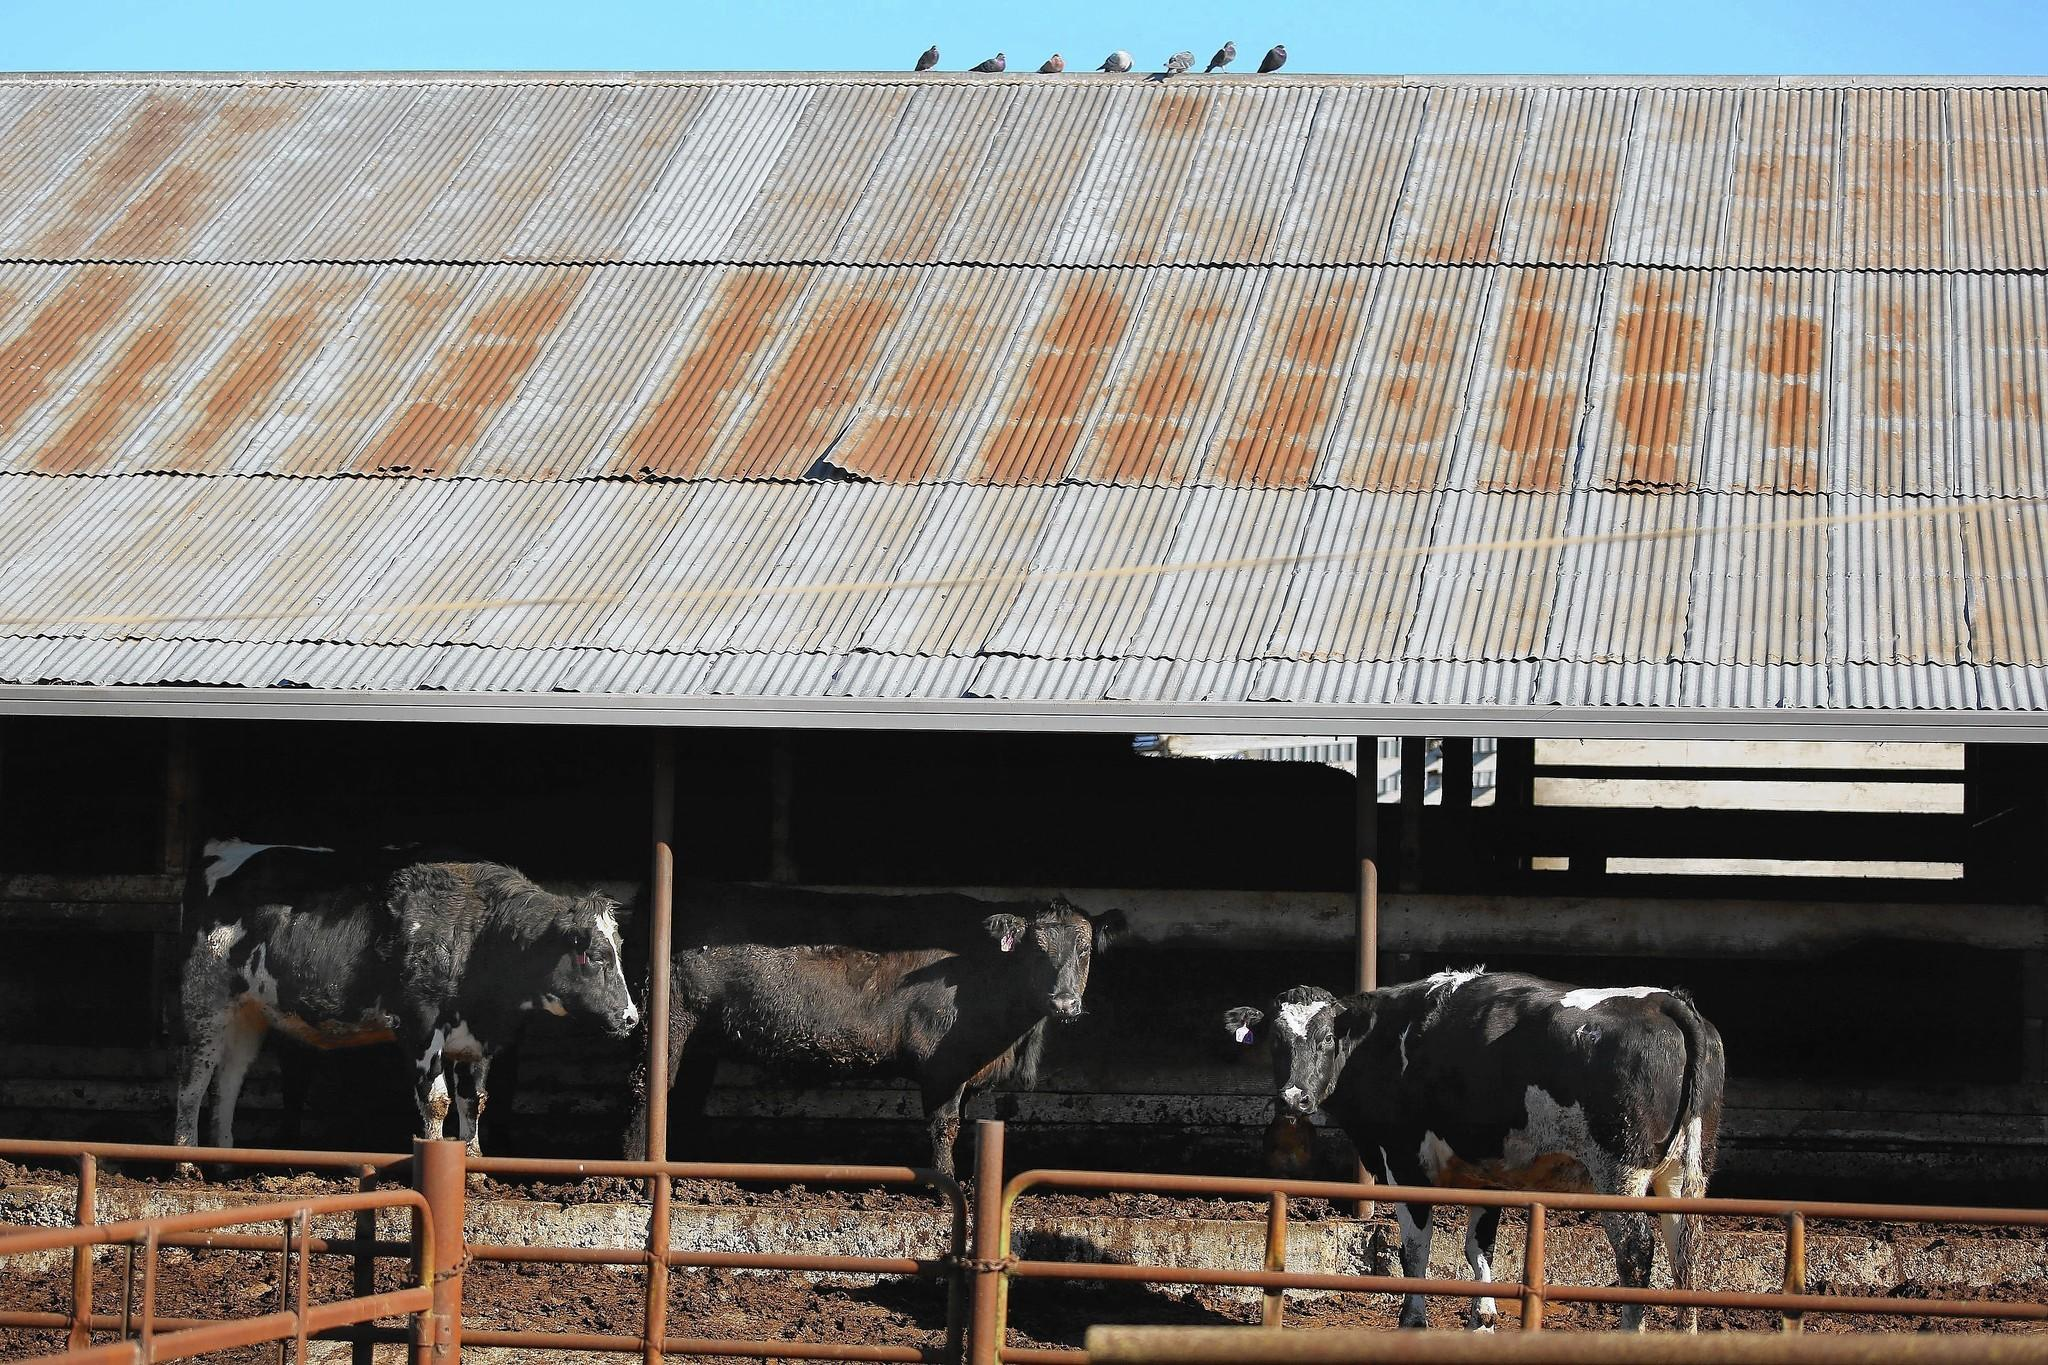 Bay Area beef processor sold meat from cows with eye cancer - latimes